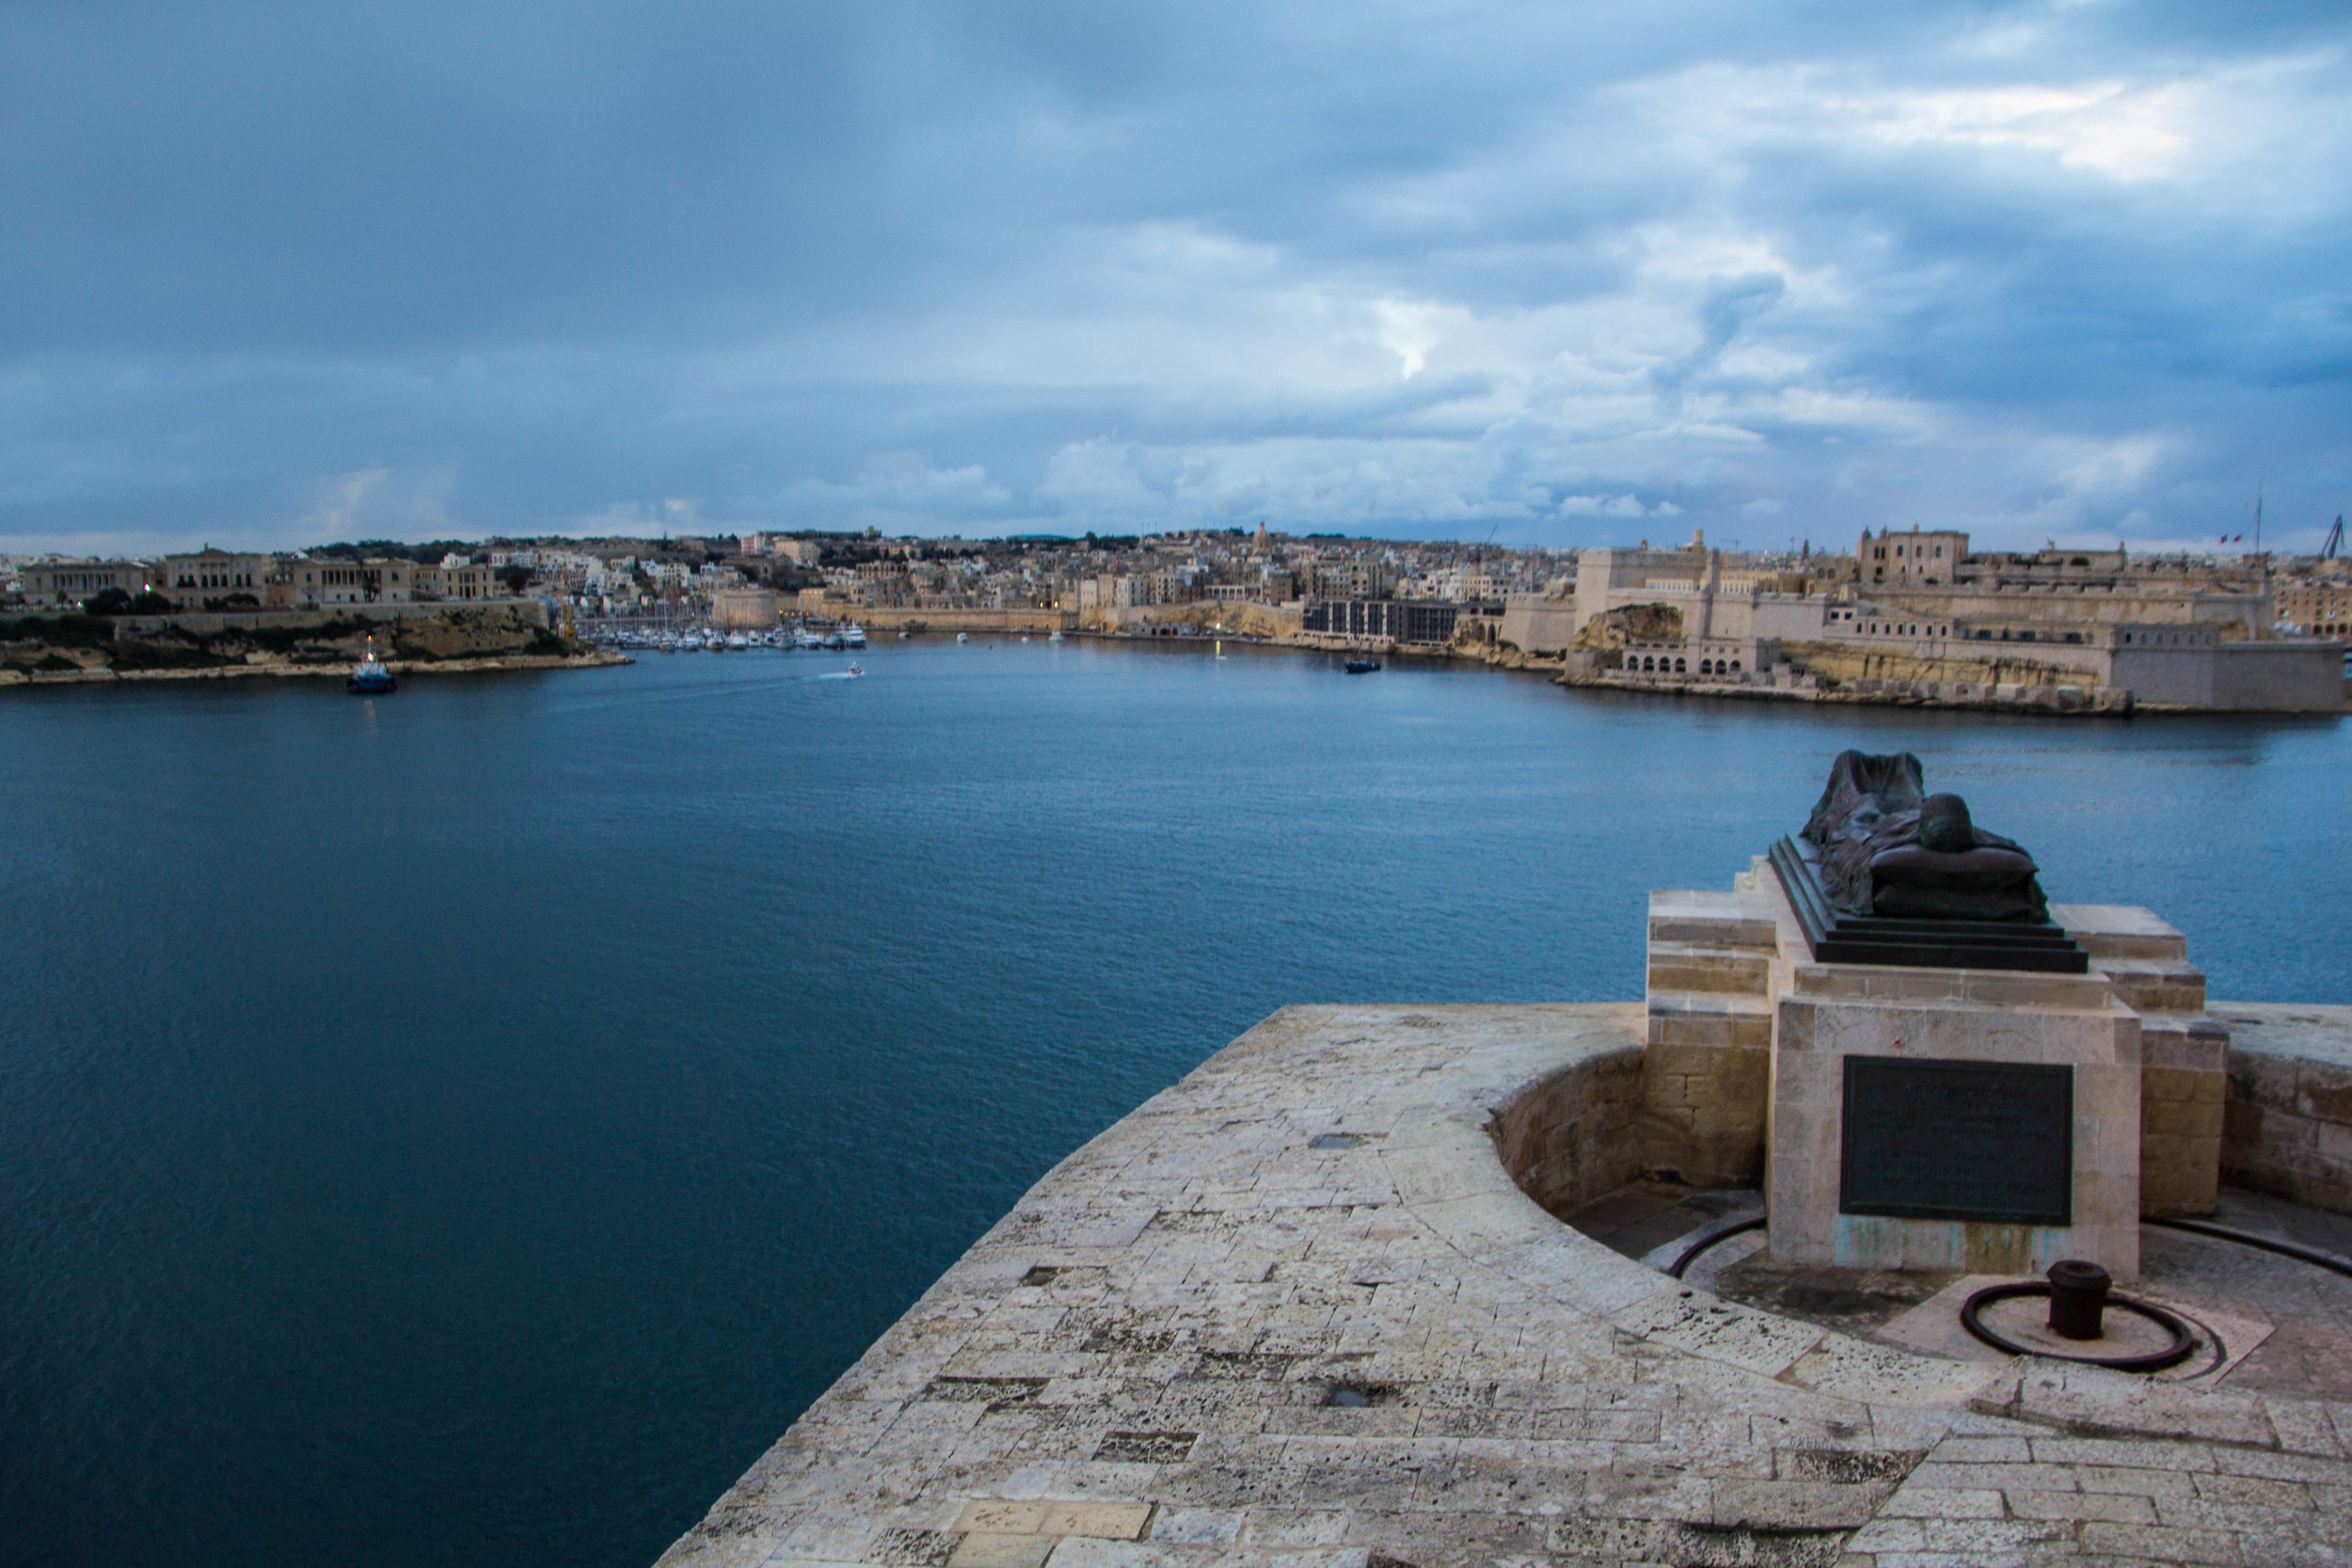 valletta-malta-clouds-rain-streets-photography-56.jpg